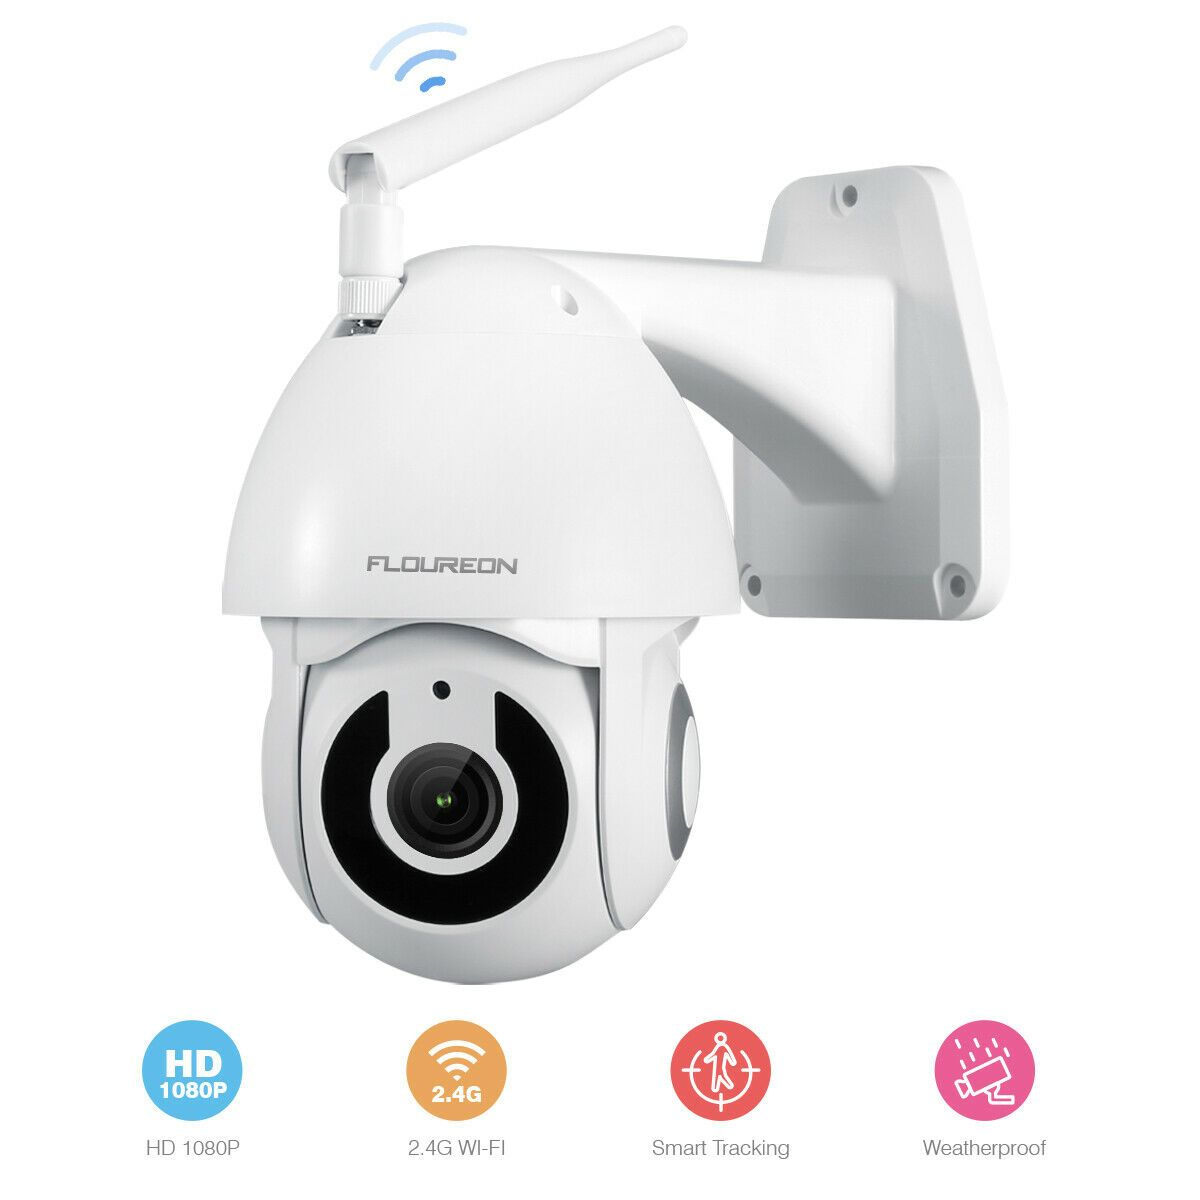 Yi Iot Ip Kamera Uberwachungskamera Camera Hd 1080p Wifi Ip Camera Pan Tilt Ip66 Kamera Ideas Of Kamera Kamera In 2020 Kamera Aussenkamera Ip Kamera